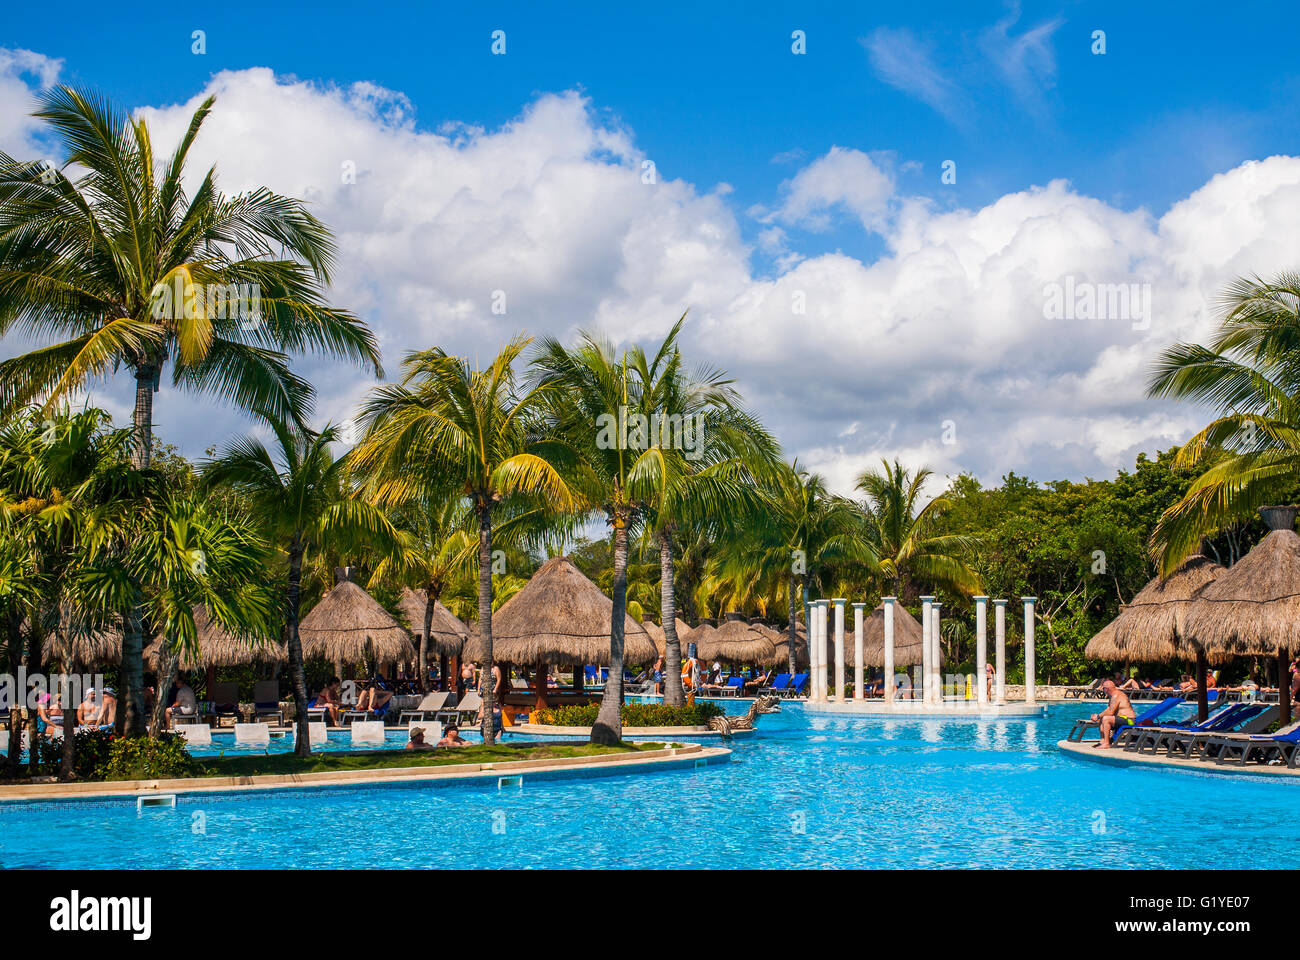 Palm trees swimming pool palm umbrellas iberostar pararisio beach stock photo royalty free - Palm beach swimming pool ...